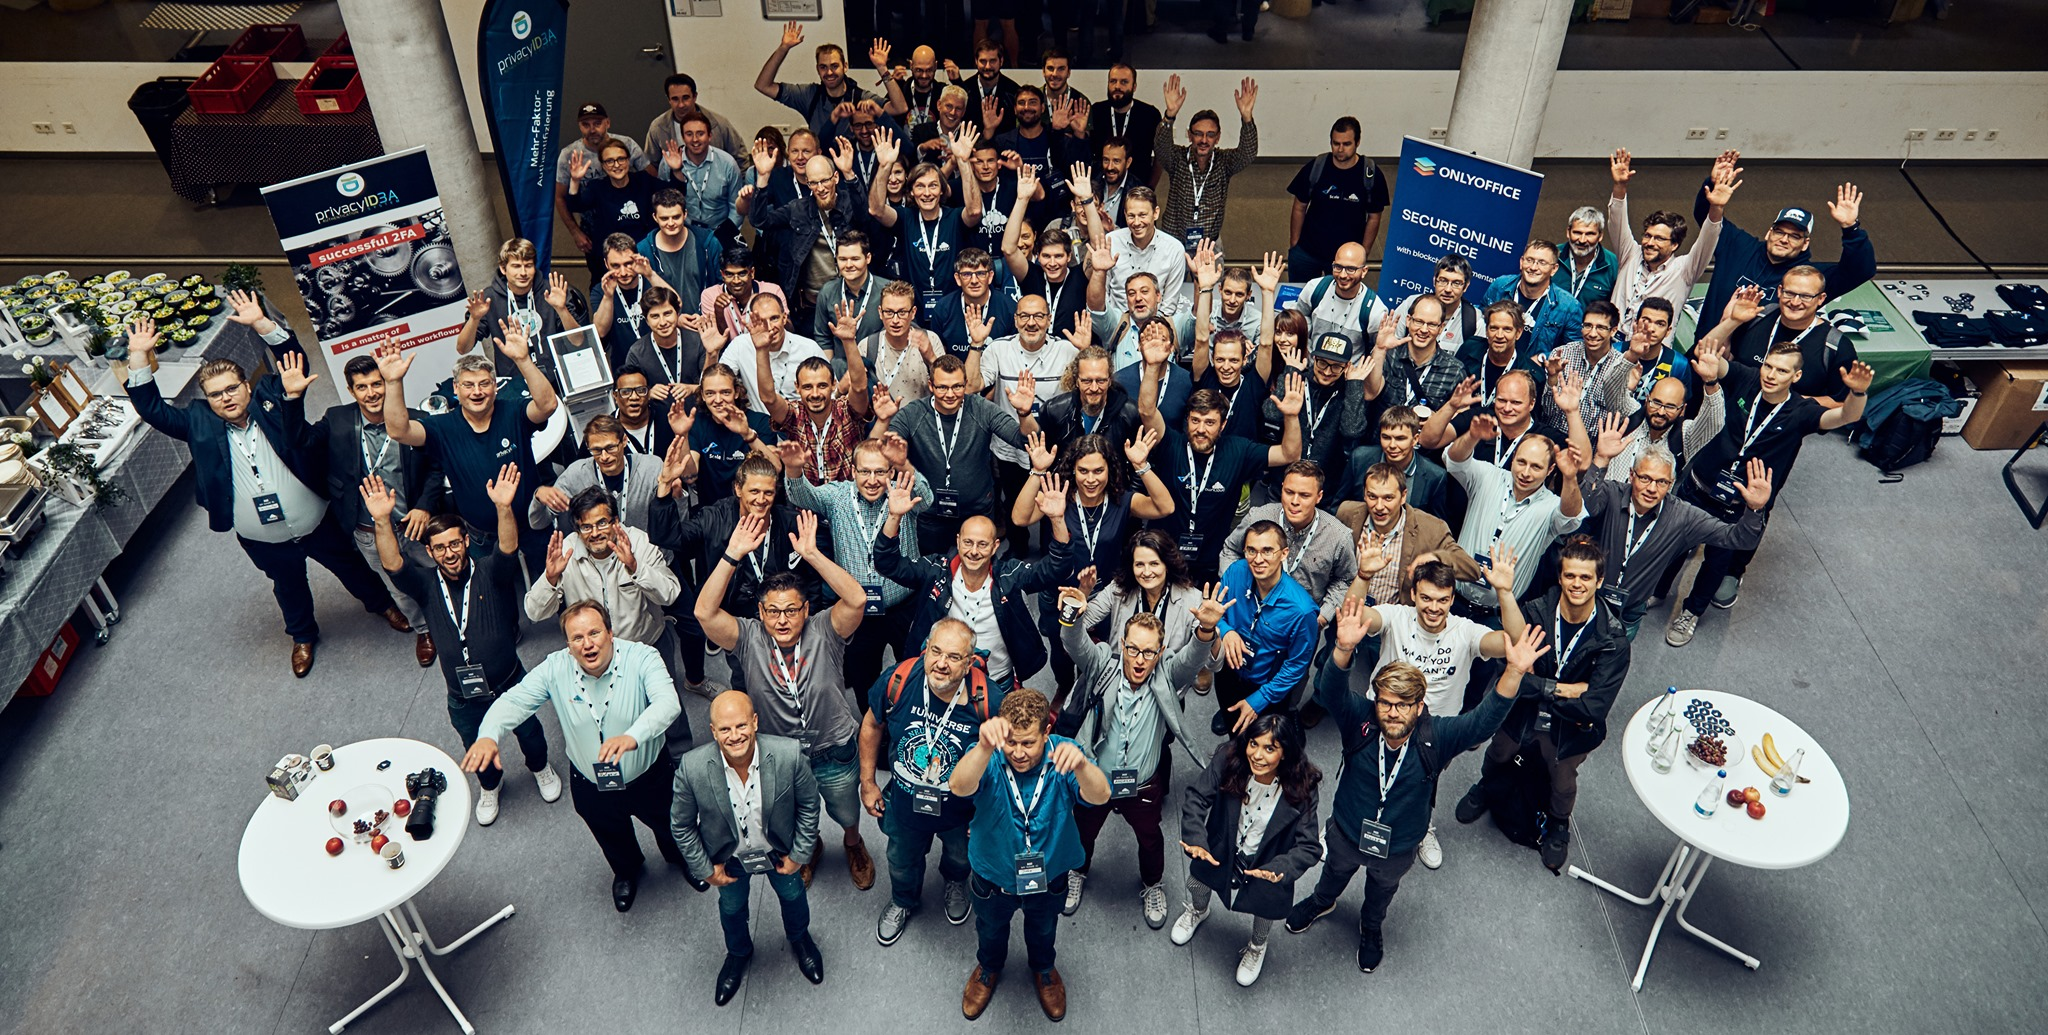 ownCloud team at the ownCloud conference 2019